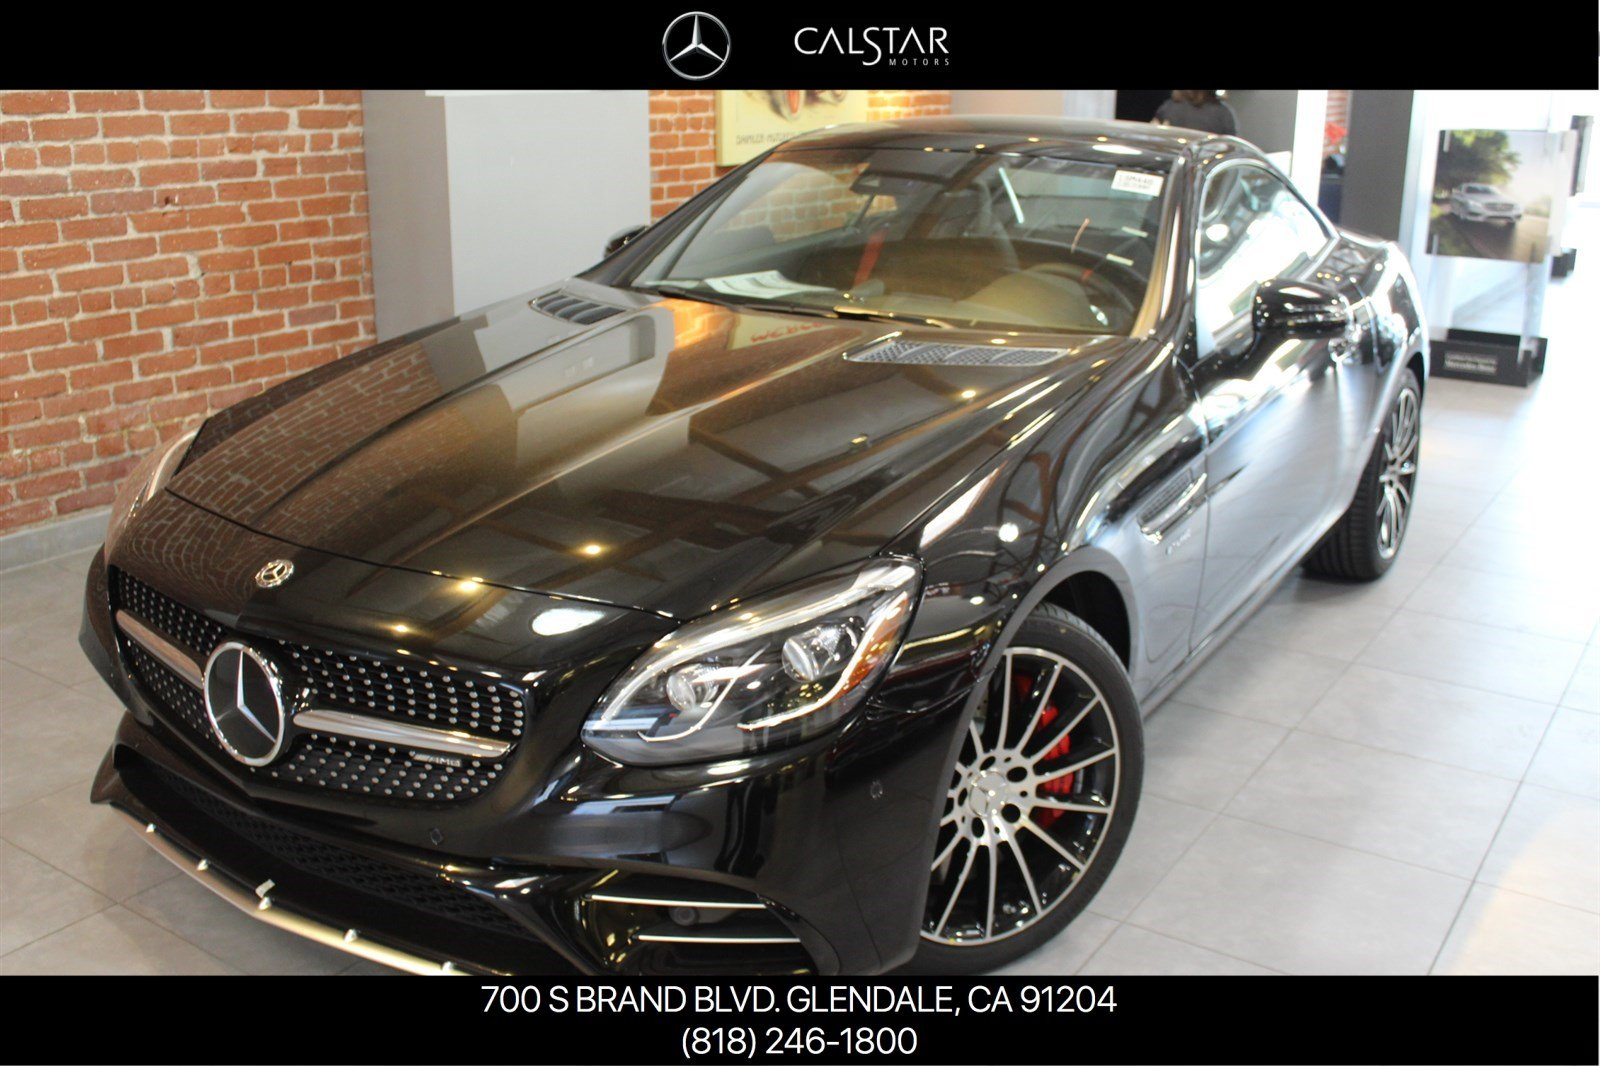 New 2018 mercedes benz slc slc 43 amg roadster roadster for Calstar mercedes benz